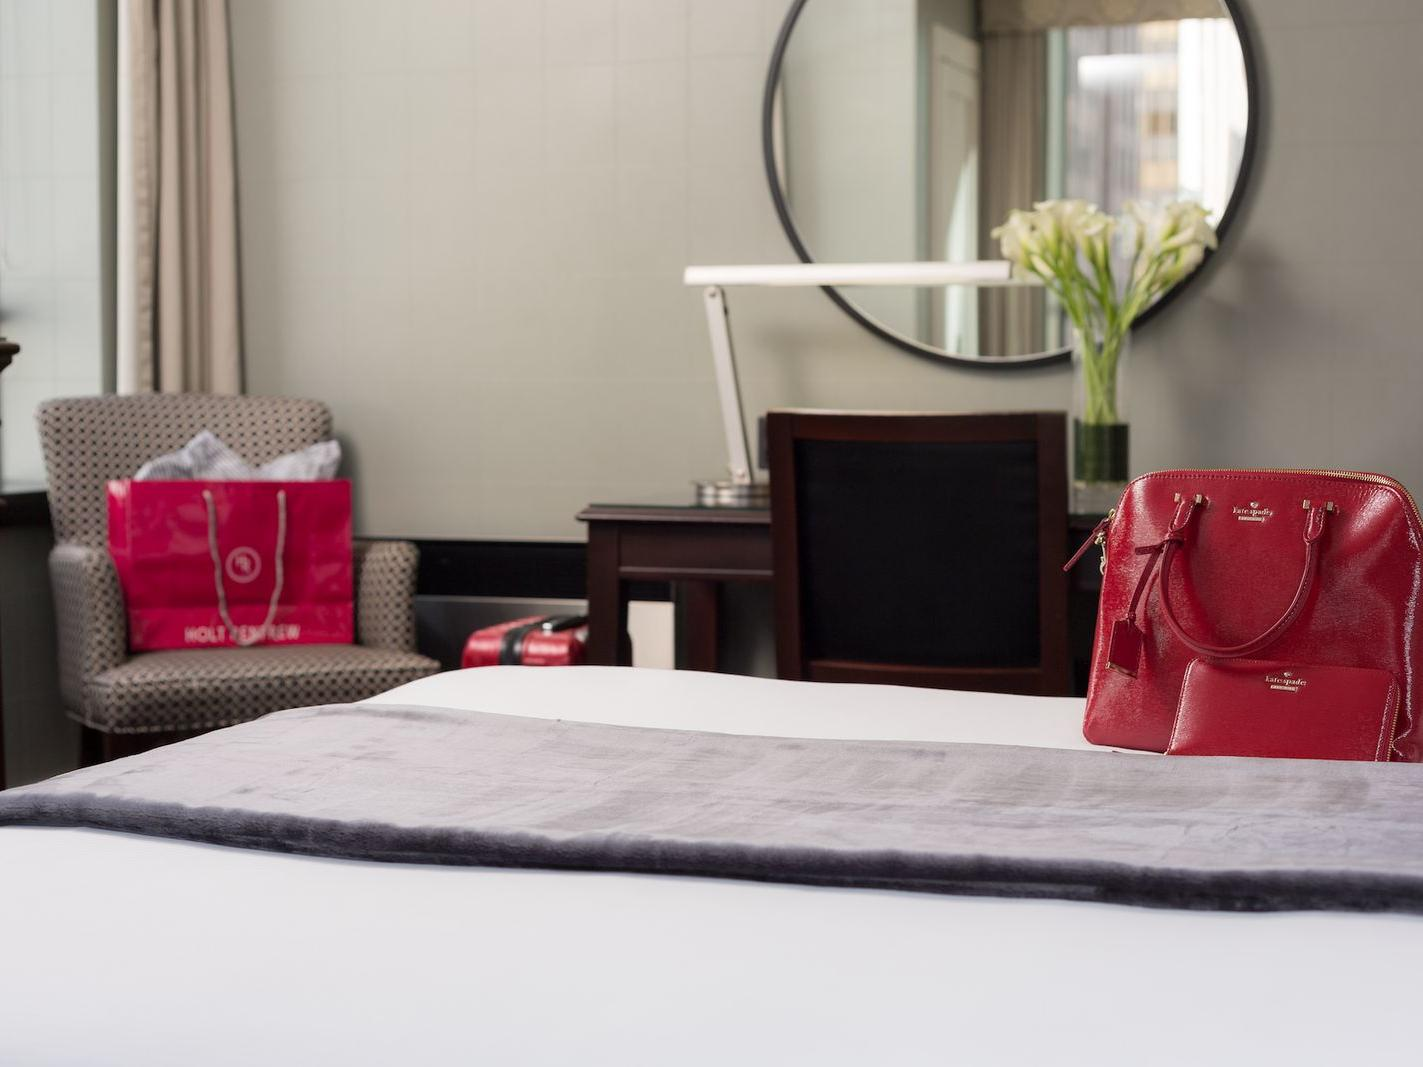 red bag on queen bed facing circular mirror